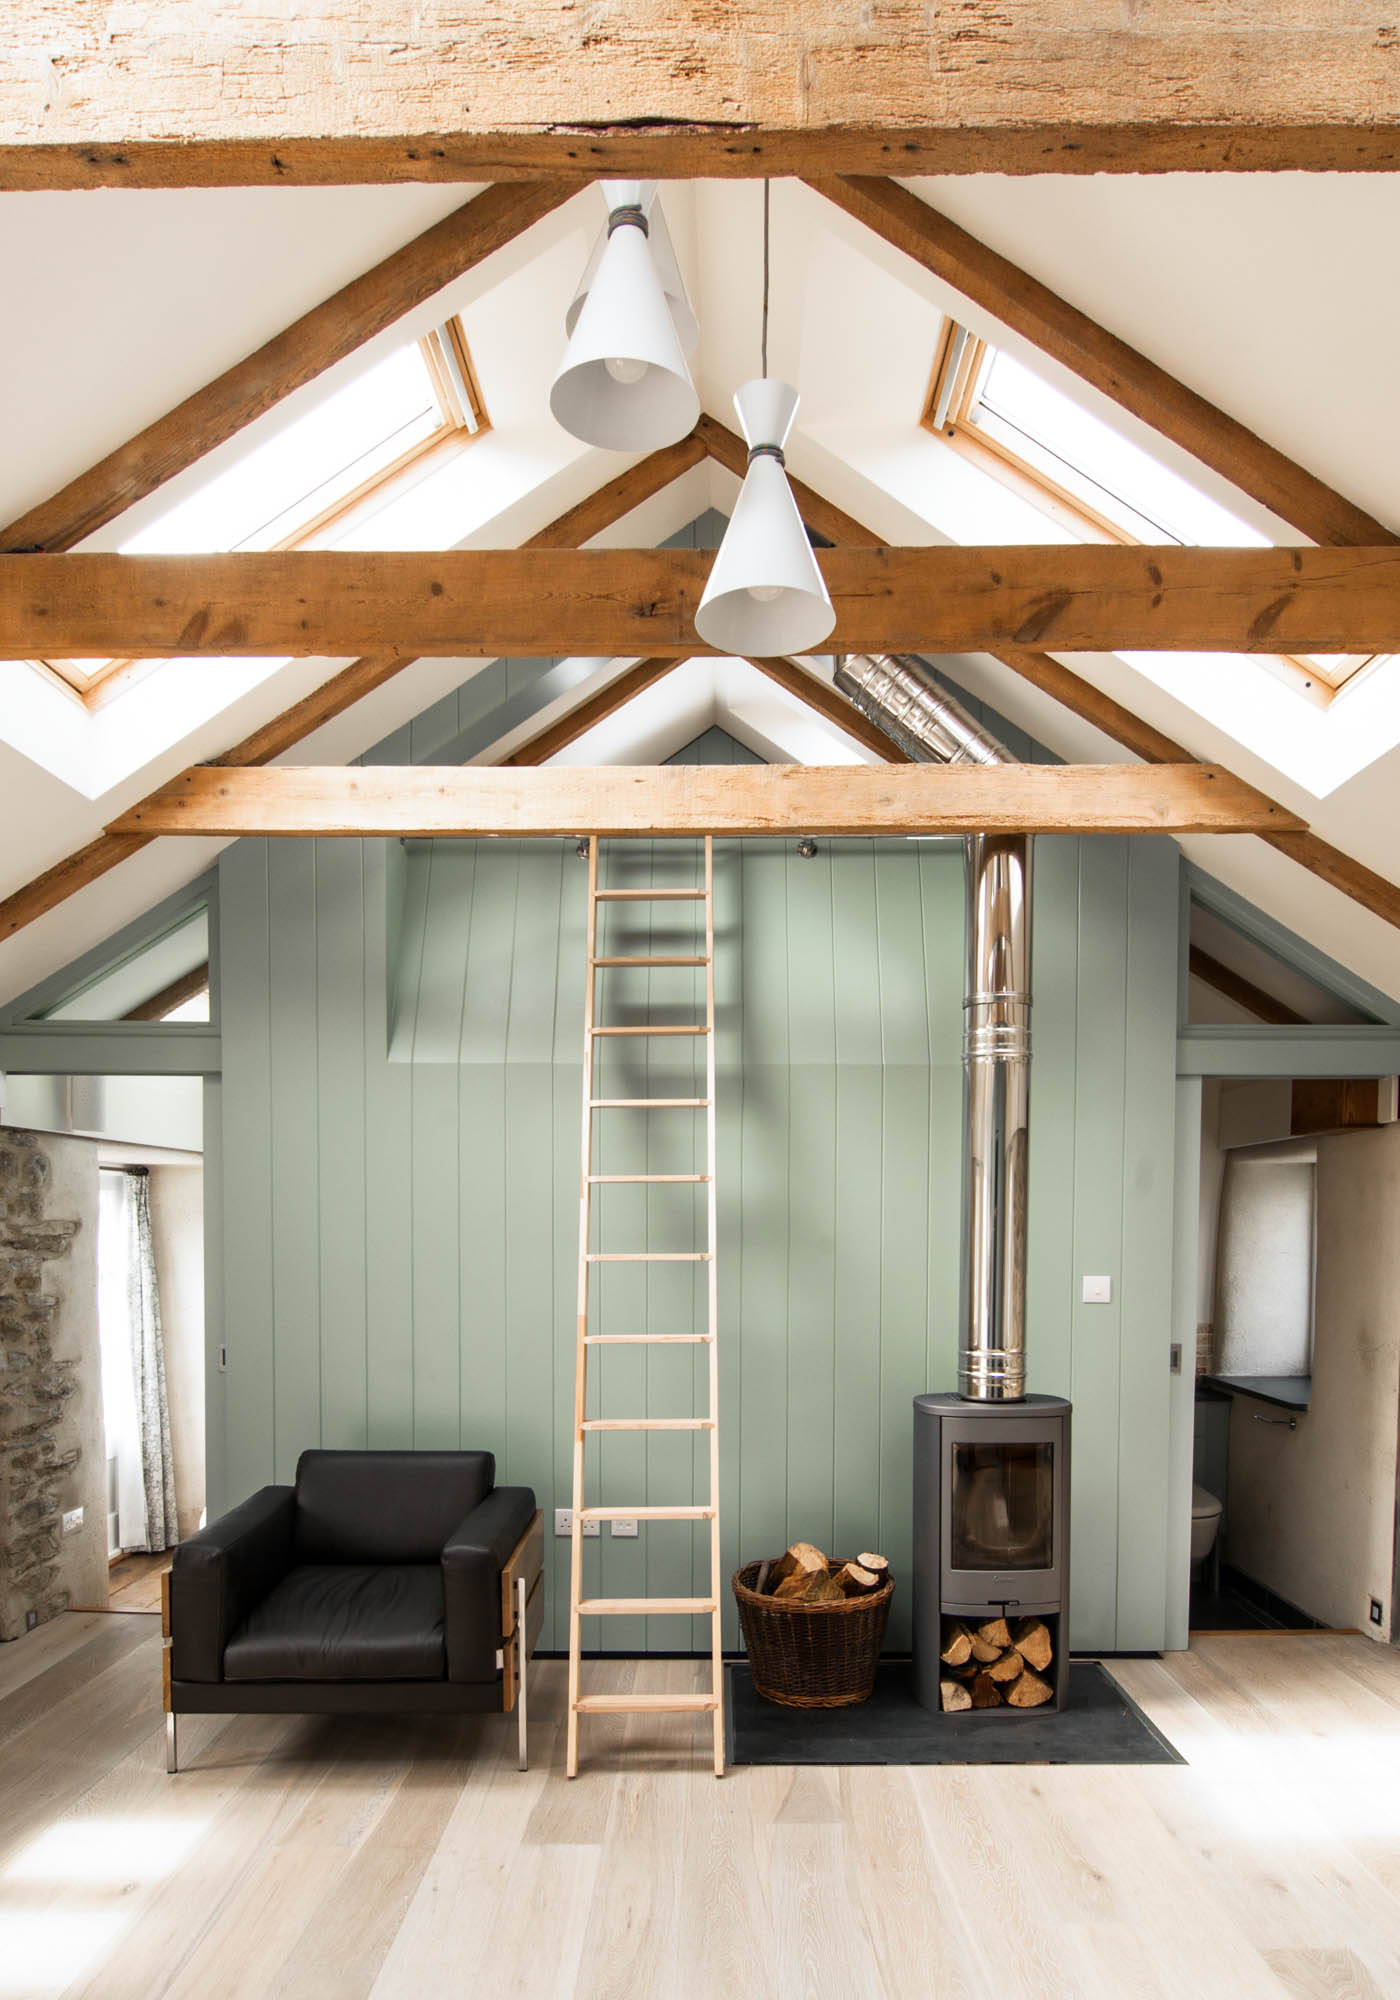 Roof lights reflecting daylight onto the light green structure and exposed beams.